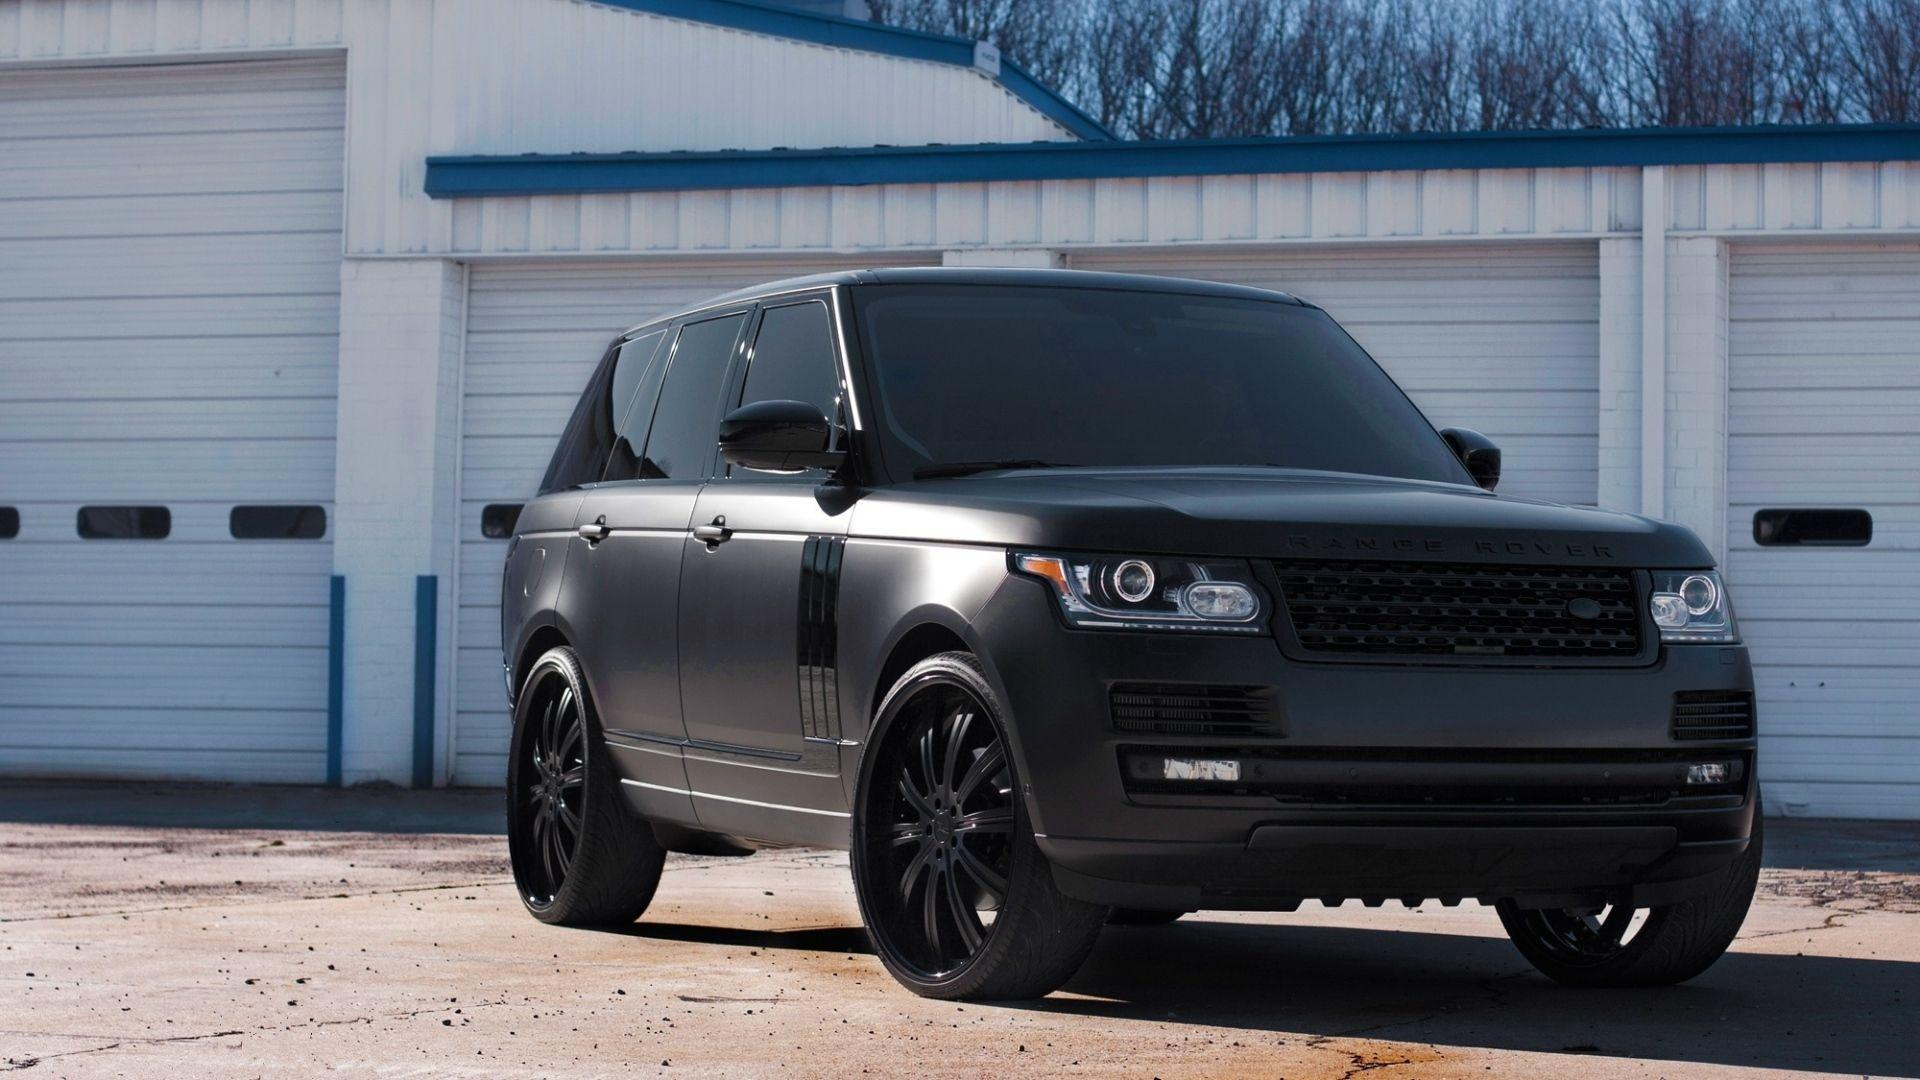 Land Rover Range Rover Wallpapers Wallpaper Cave